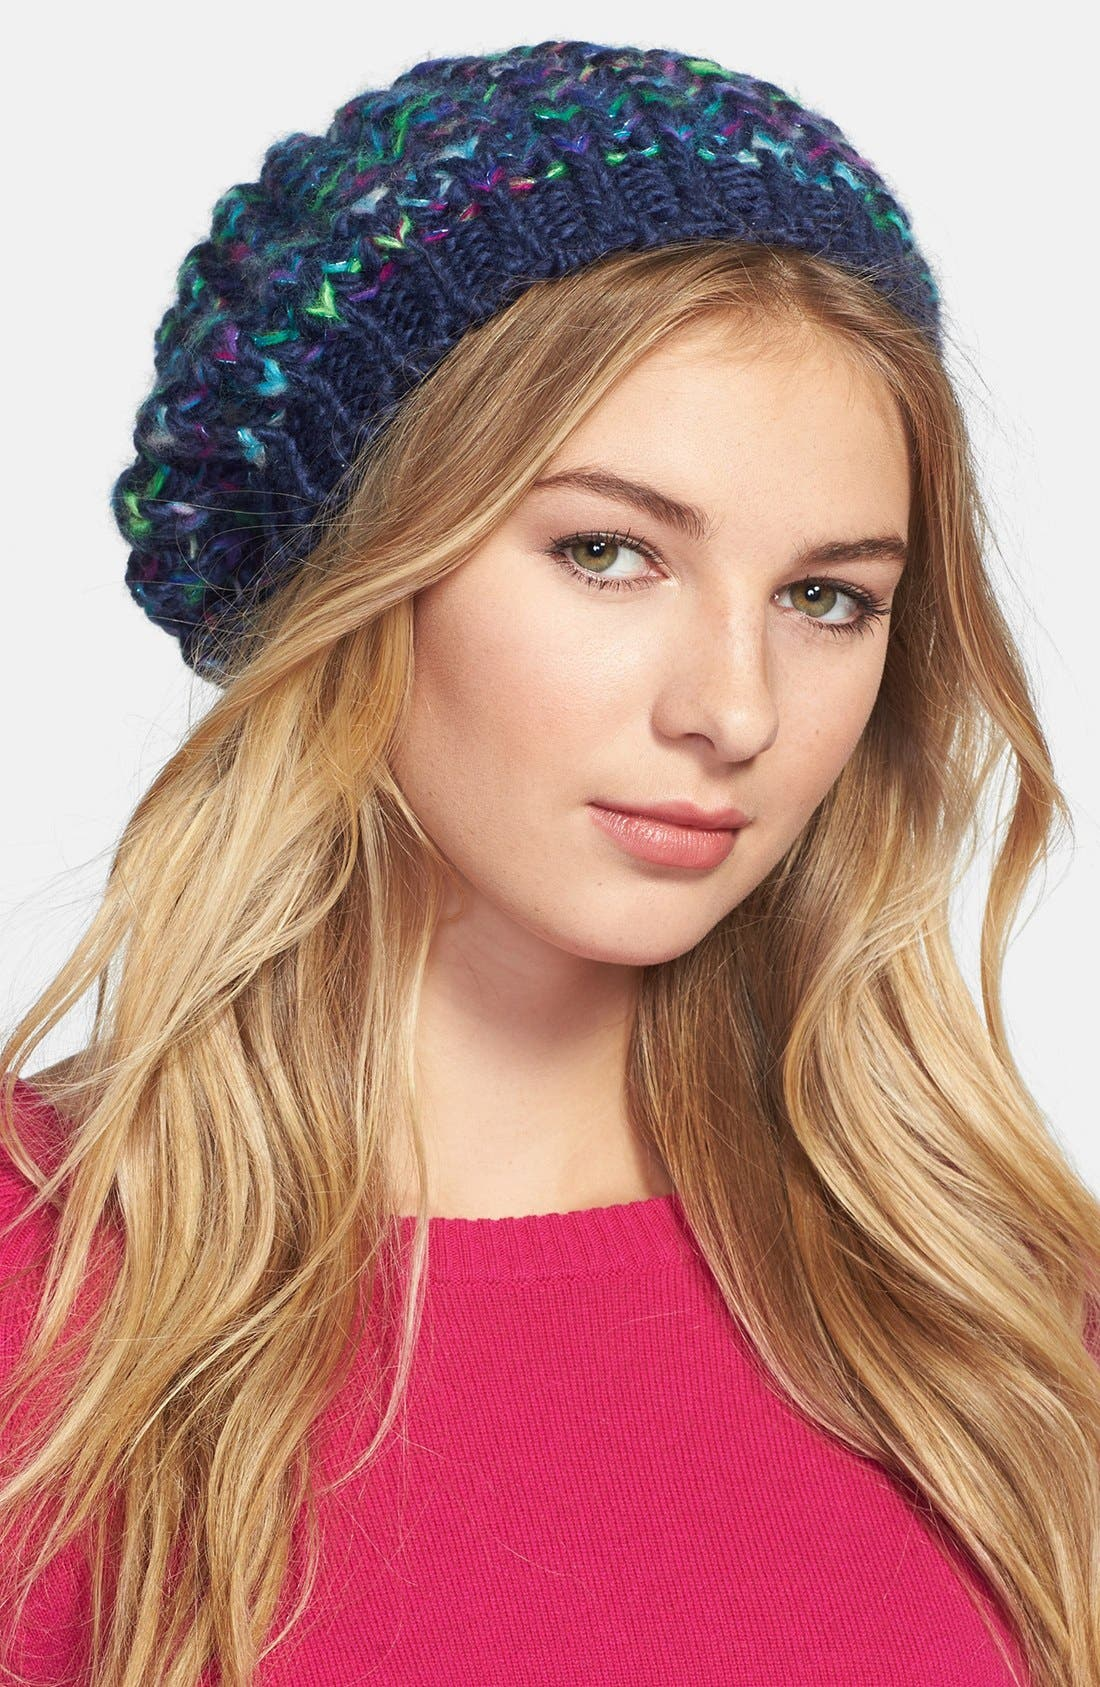 Main Image - Steve Madden 'Taste the Rainbow' Knit Beret (Special Purchase)